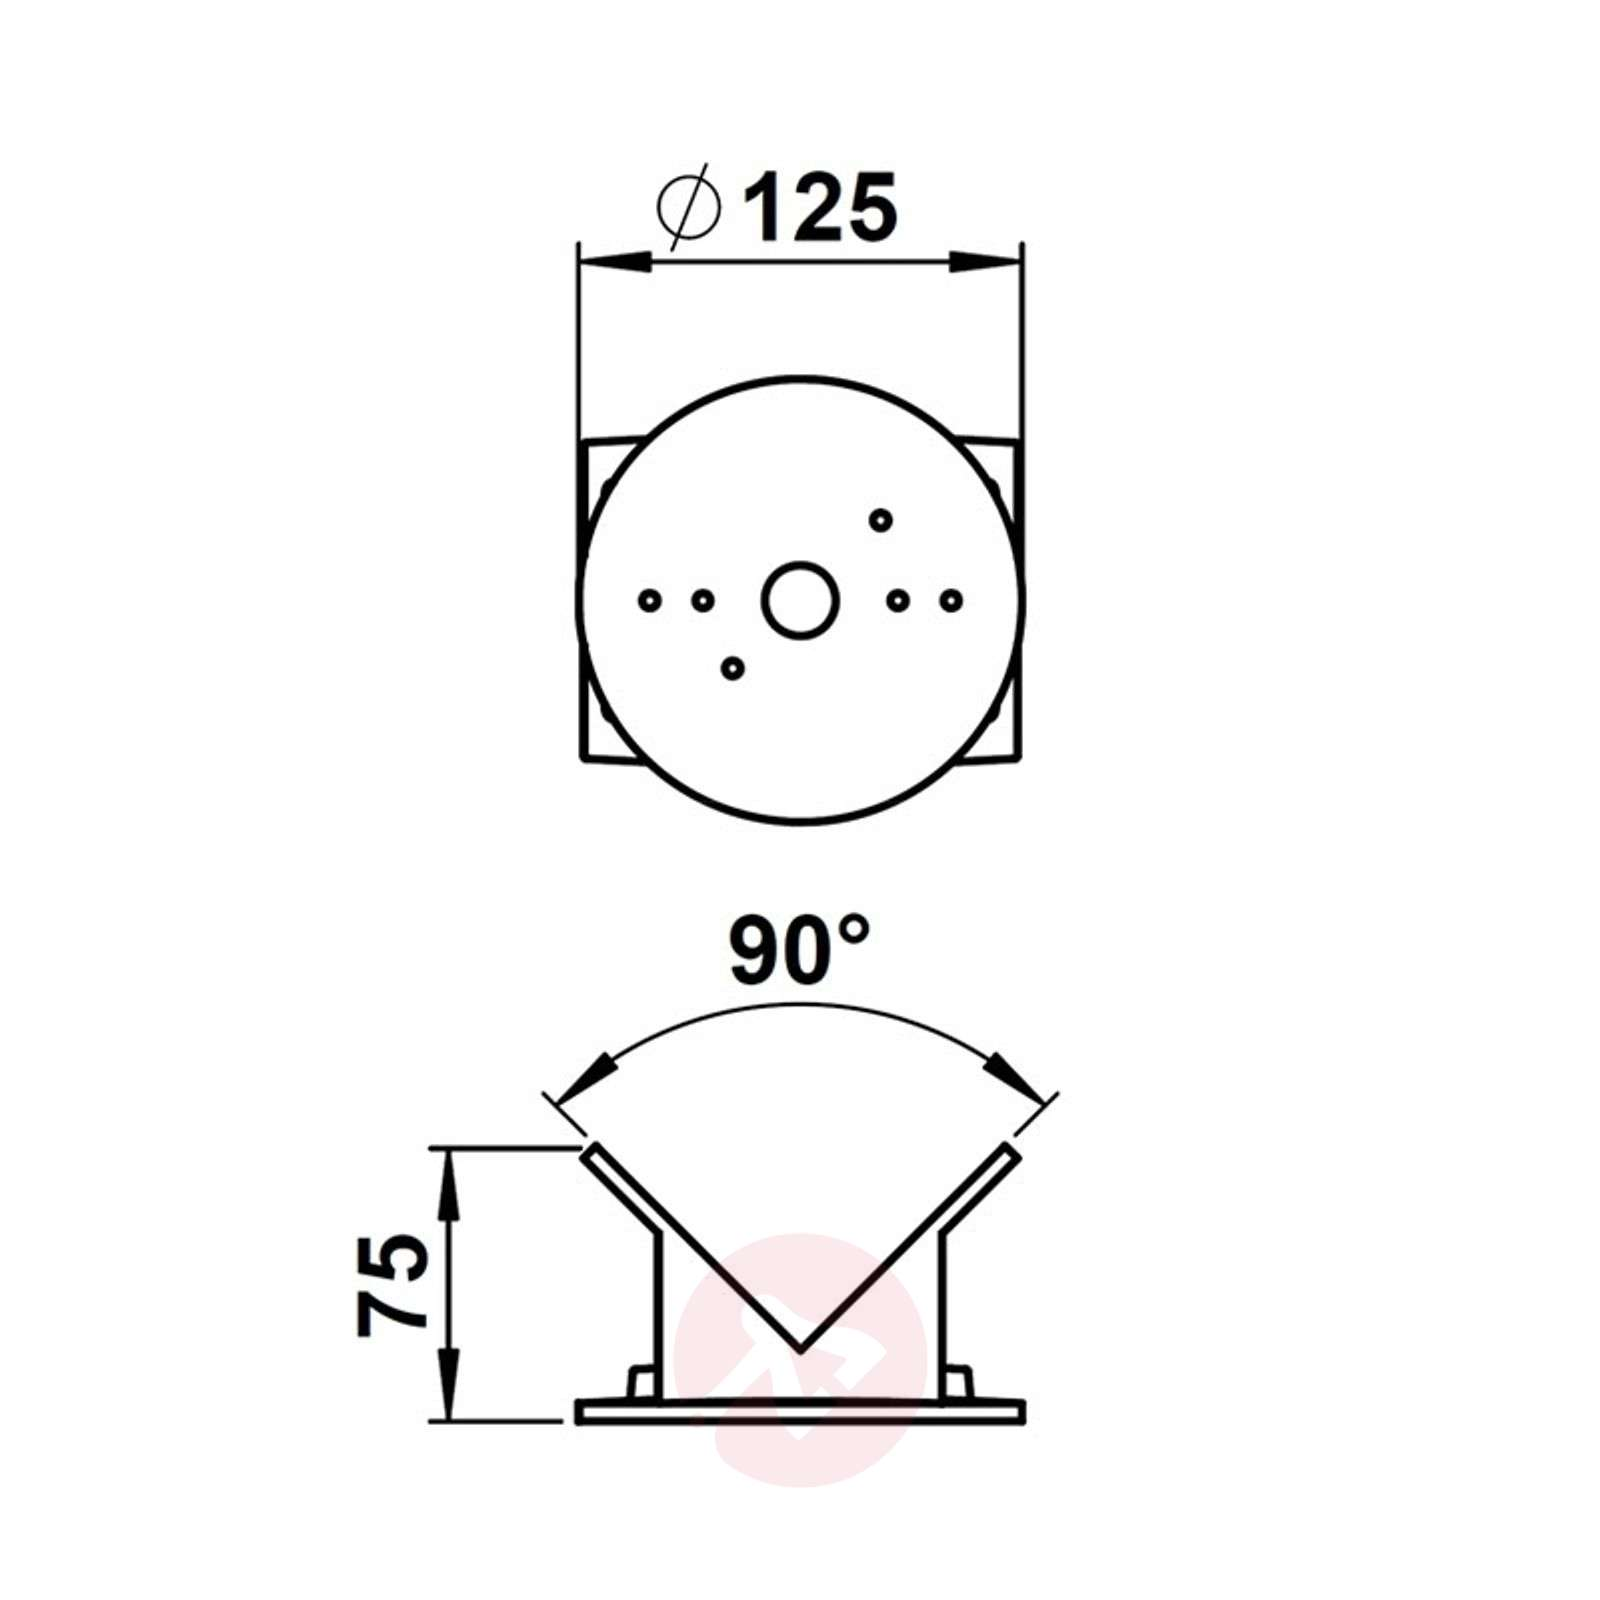 Corner mount for outdoor wall lights, round, alu-4000285-01